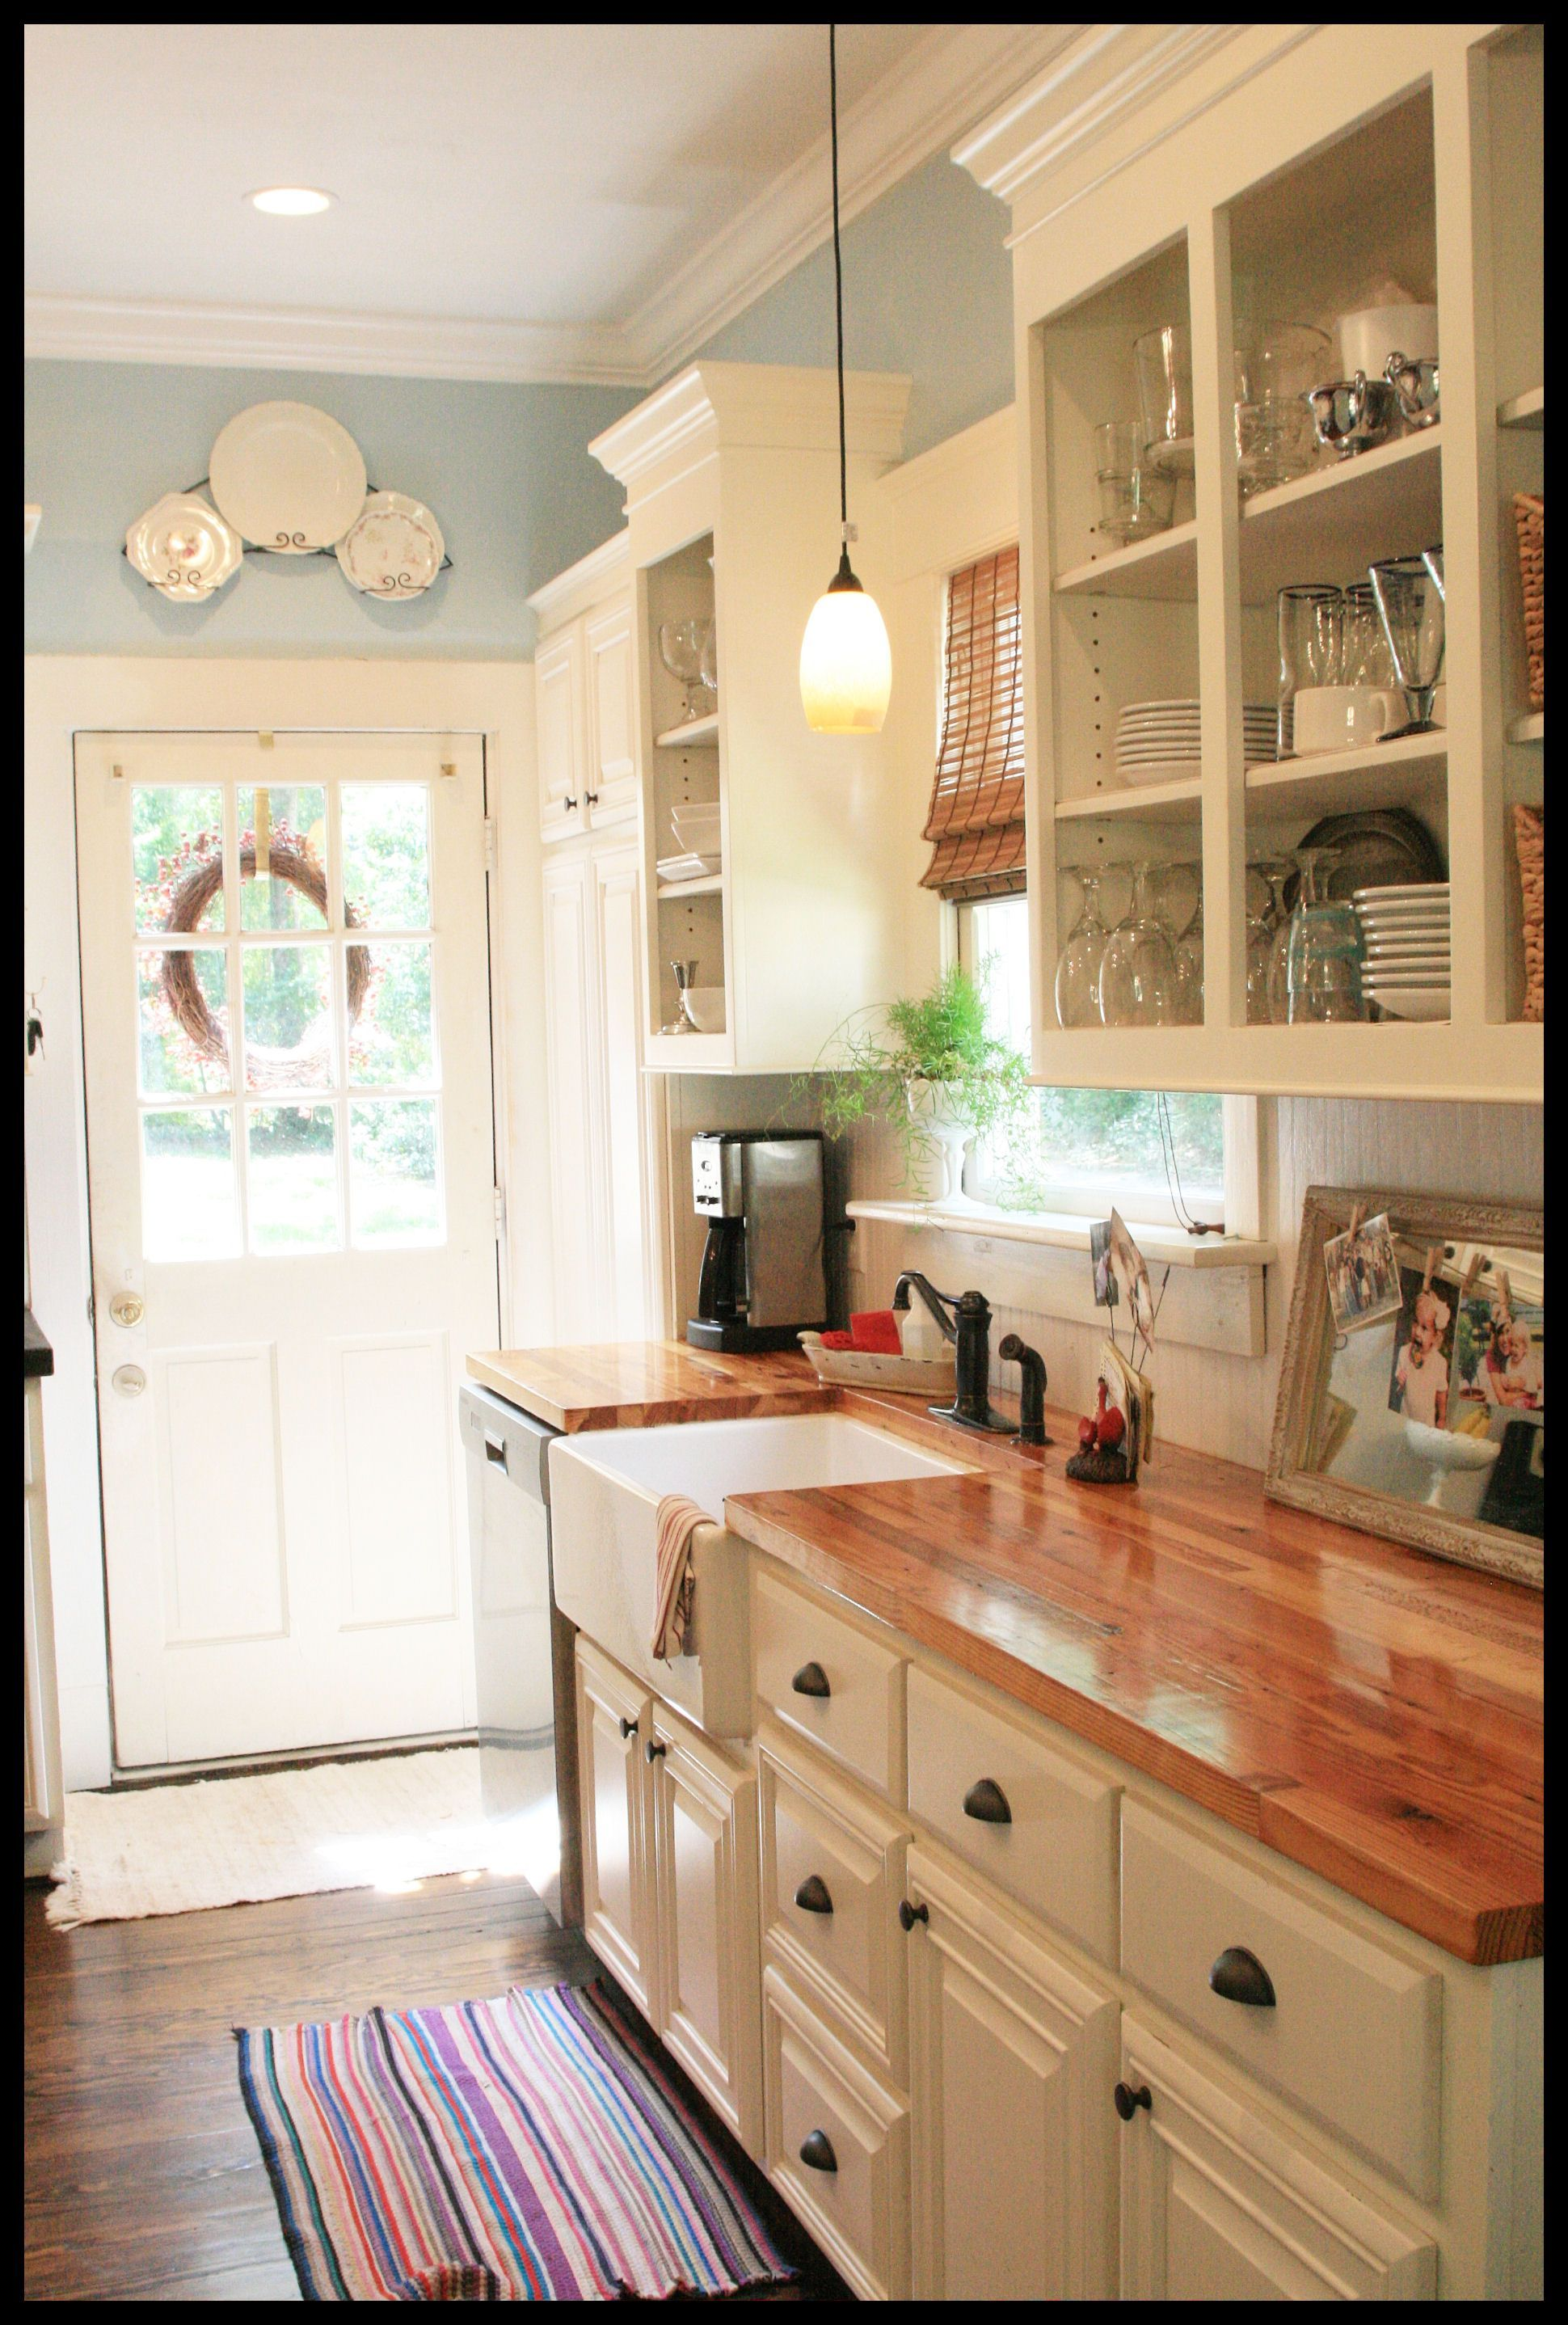 grove carters project builders kitchen s inc cottage caretakers cupboard millwork img david a nice carter cottages caretaker